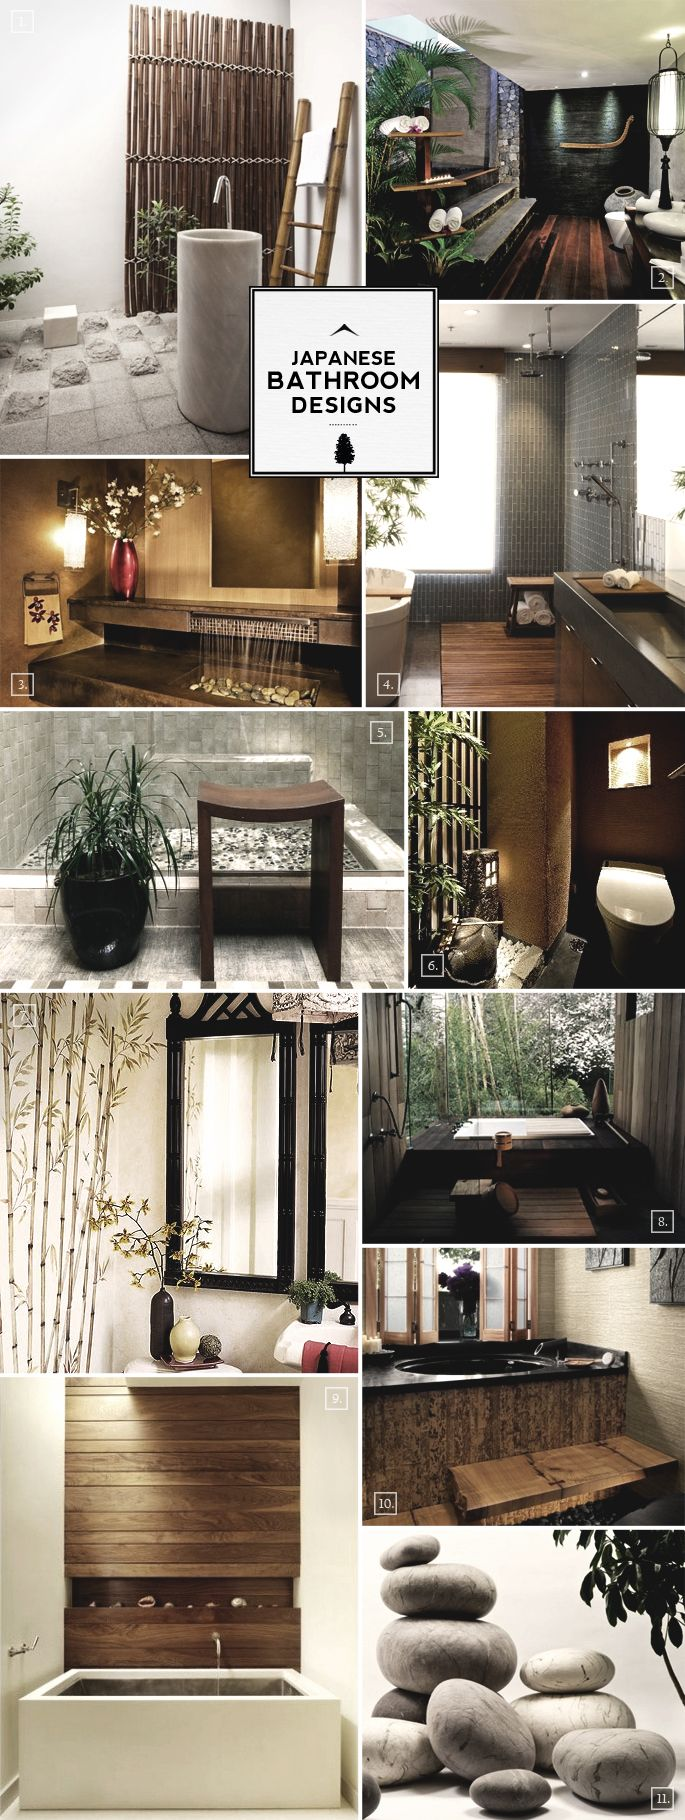 Zen Style: Japanese Bathroom Design Ideas | Japanese bathroom, Zen on zen room ideas, yoga inspired bathrooms, black inspired bathrooms, nature inspired bathrooms, nice bathrooms, wood inspired bathrooms, zen style bathroom, chinese inspired bathrooms, garden inspired bathrooms, sunset-inspired bathrooms, spa inspired bathrooms, zen bathroom ideas, japanese inspired bathrooms, zen bathroom accessories, zen dream kitchen, zen small bathroom makeovers, water inspired bathrooms, hgtv bathrooms, zen bath, zen design,